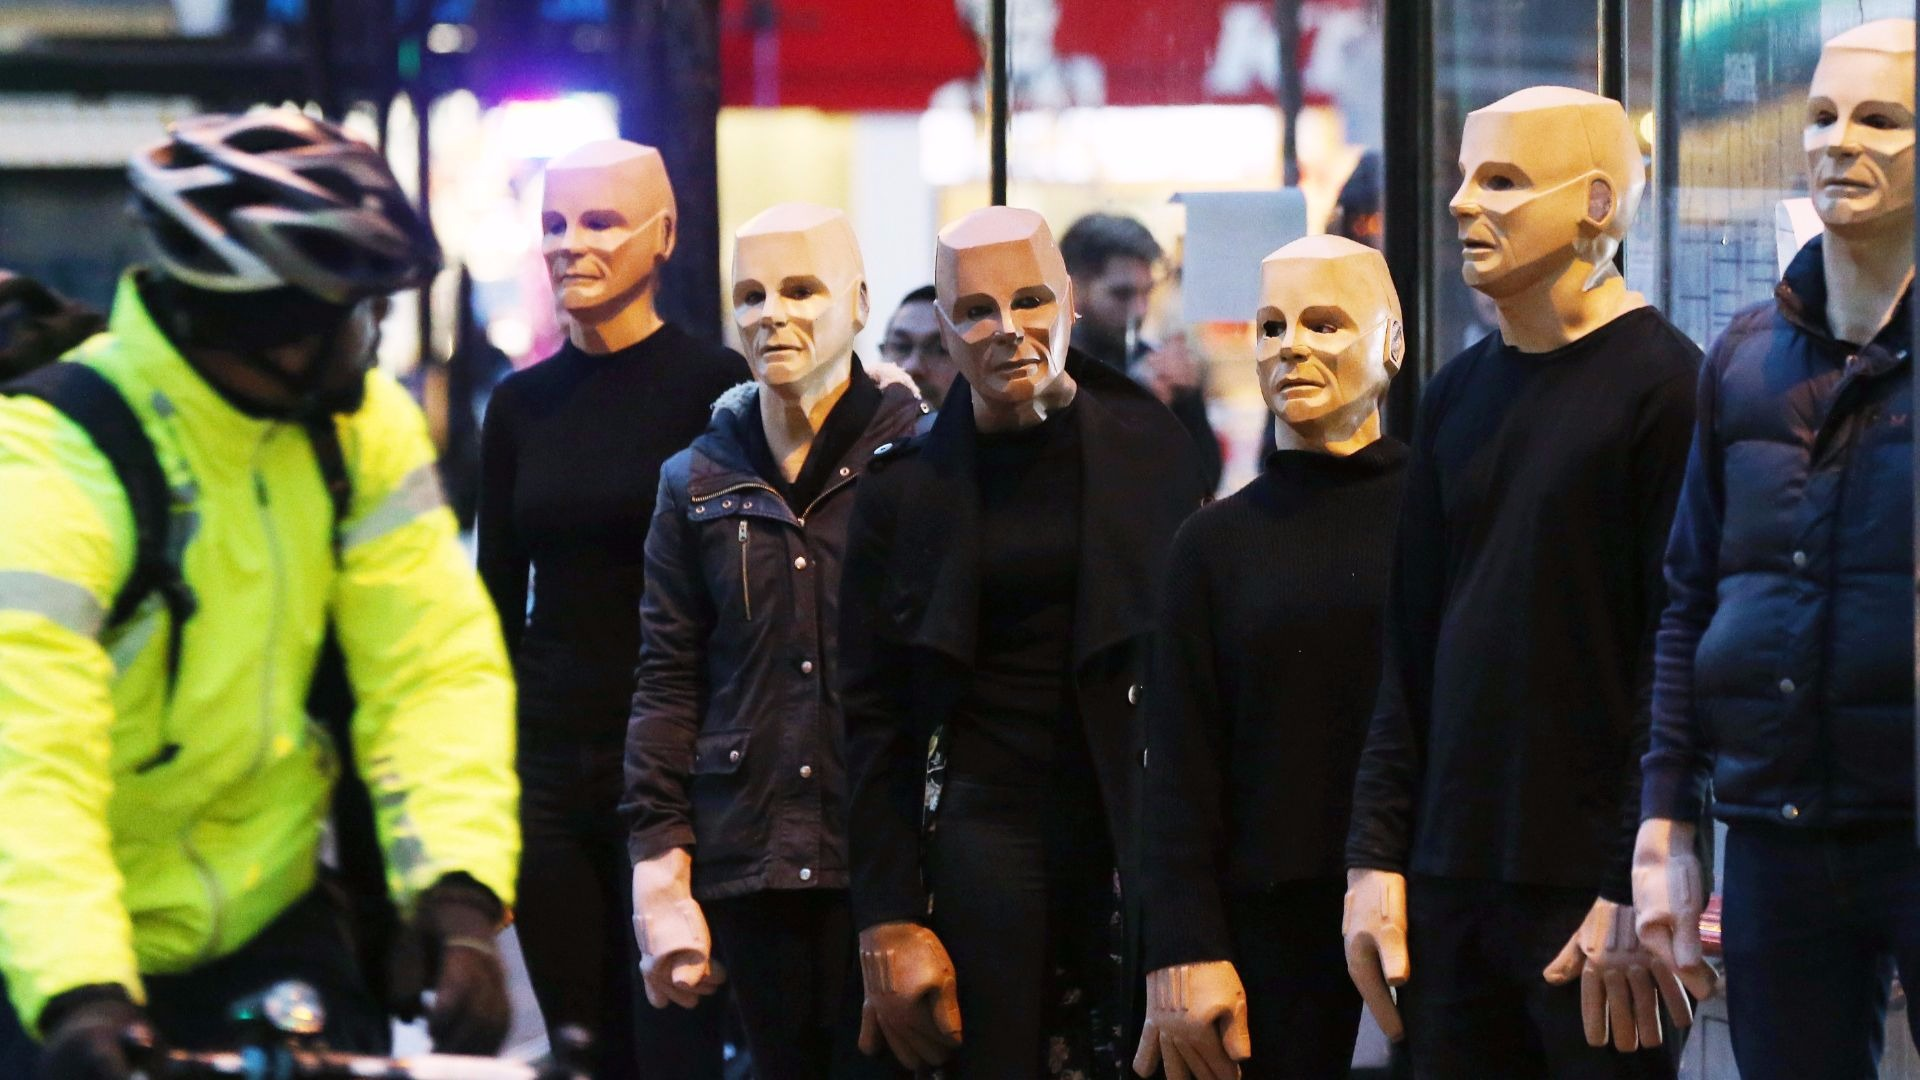 Fans donned Kryten masks for the Red Dwarf VII season send-off.